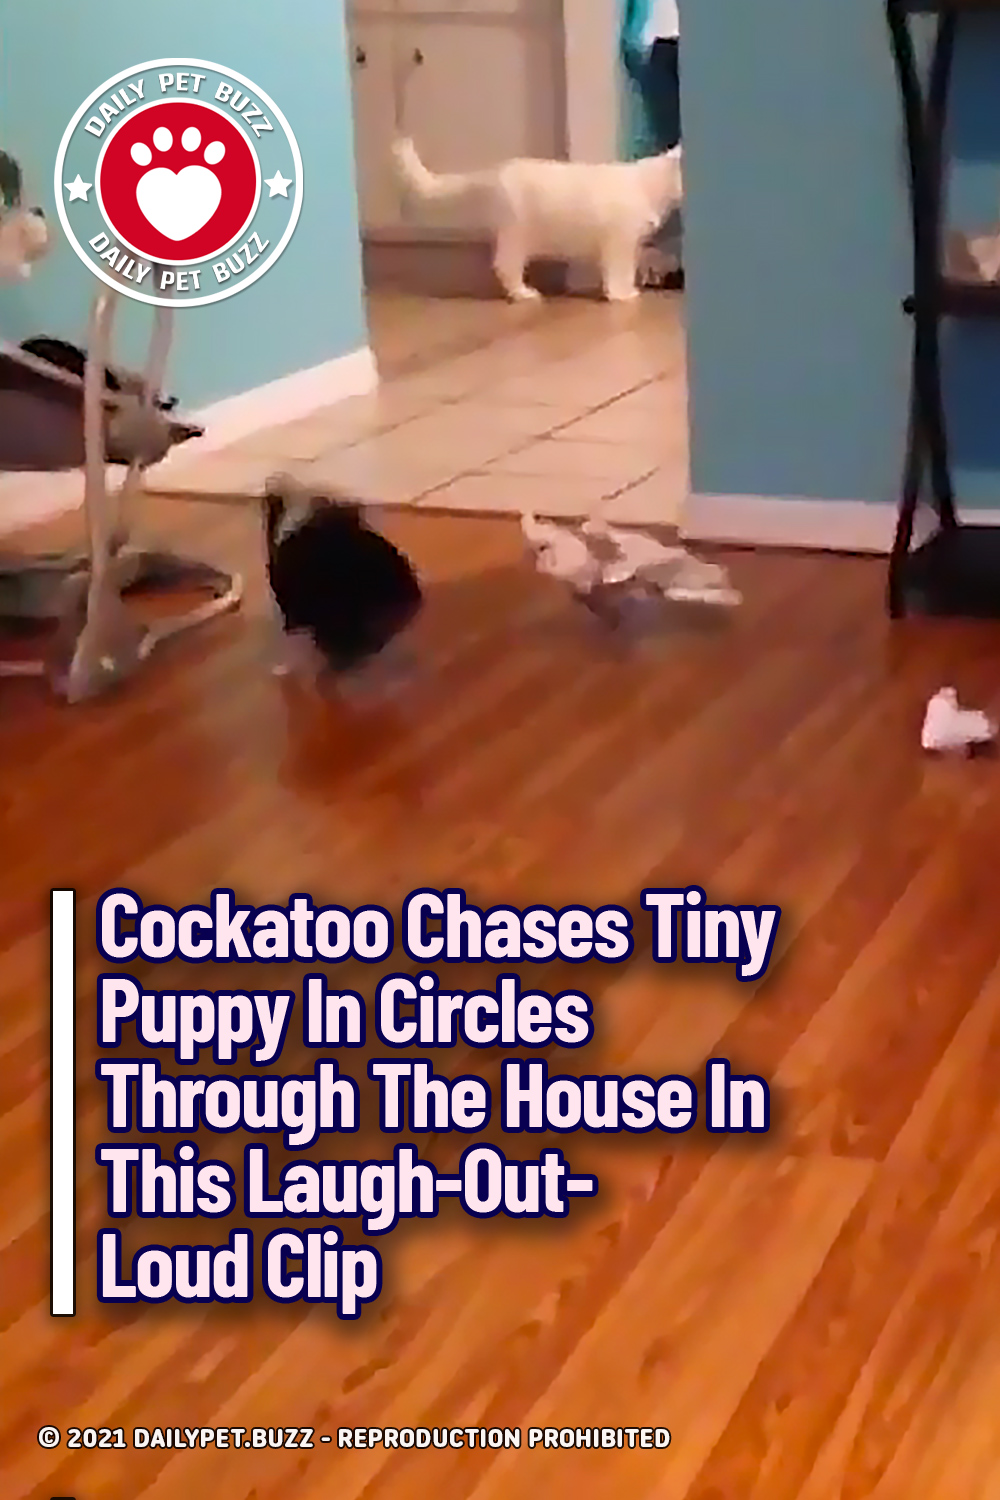 Cockatoo Chases Tiny Puppy In Circles Through The House In This Laugh-Out-Loud Clip